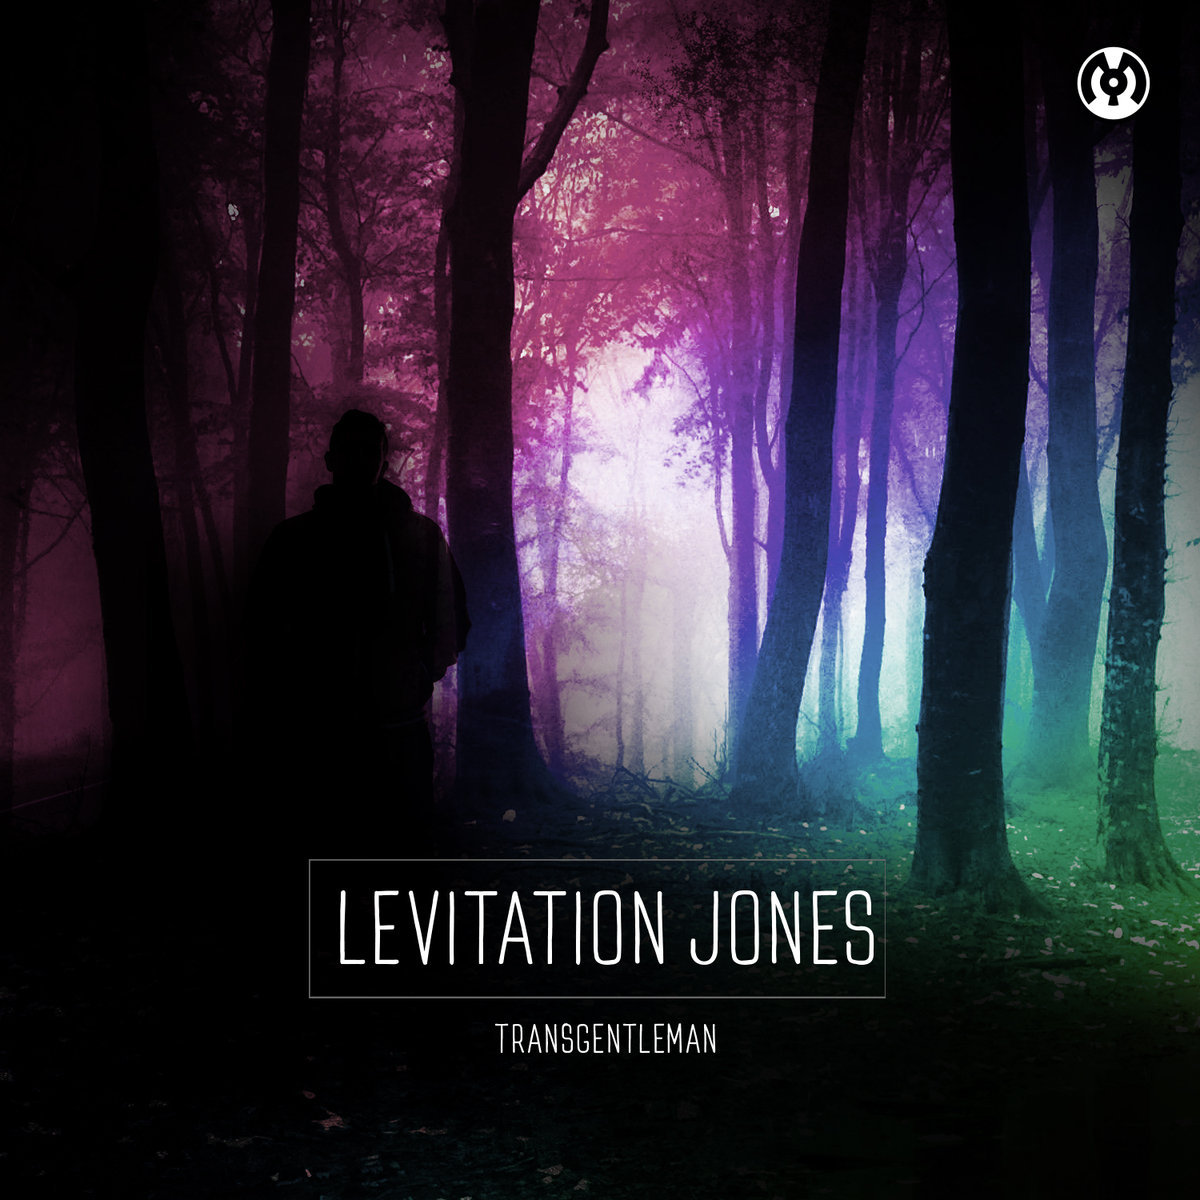 Levitation Jones - Transgentleman @ 'Transgentleman' album (electronic, dubstep)